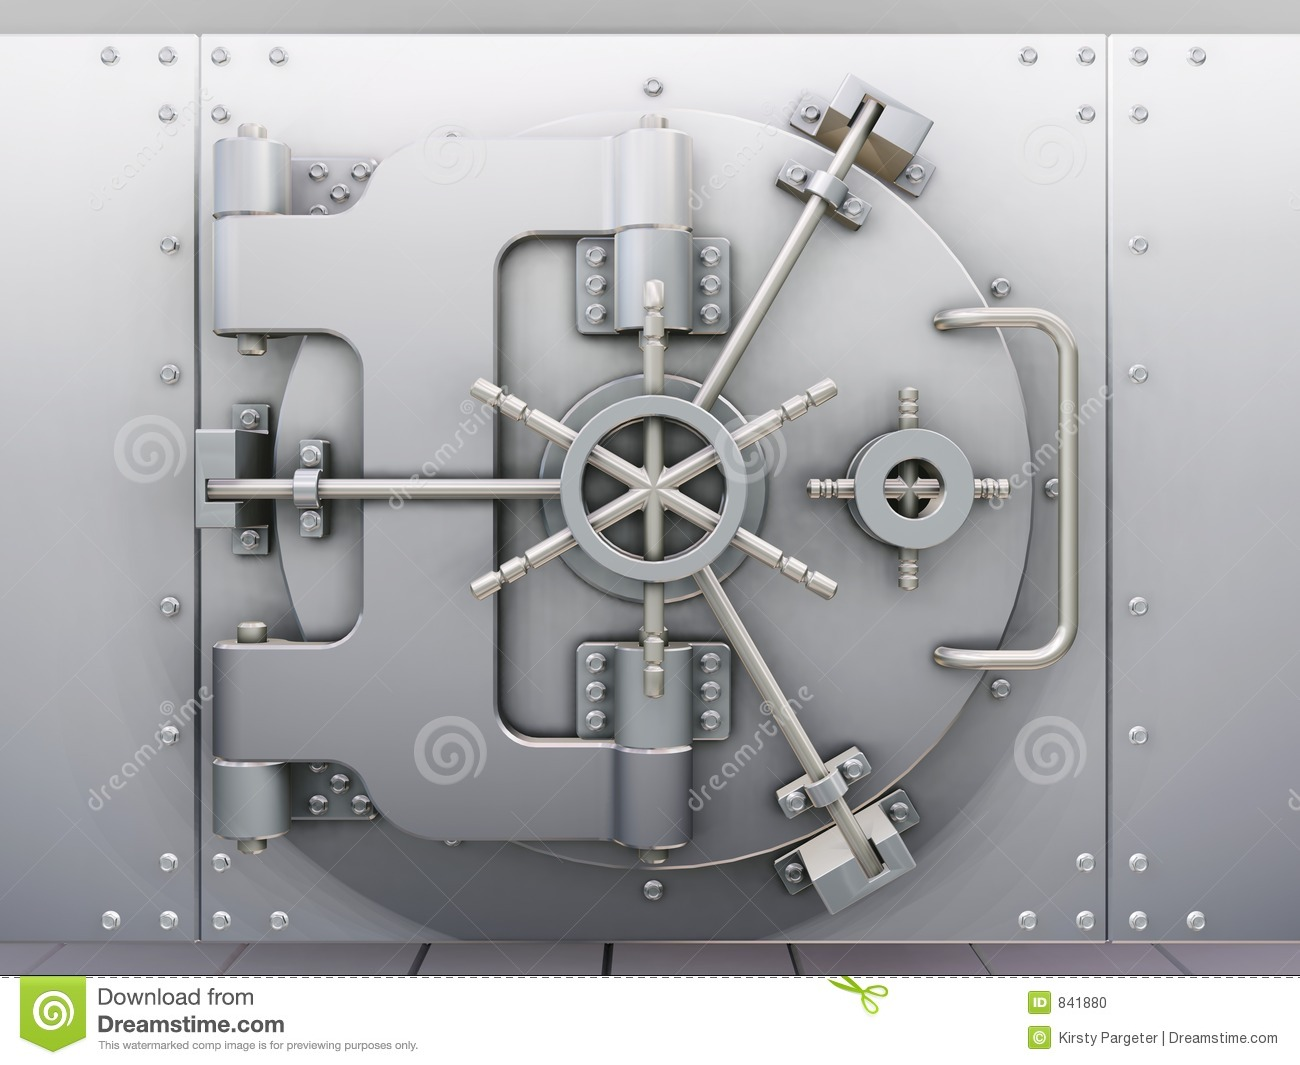 Bank vault stock photo image 841880 for Production vault